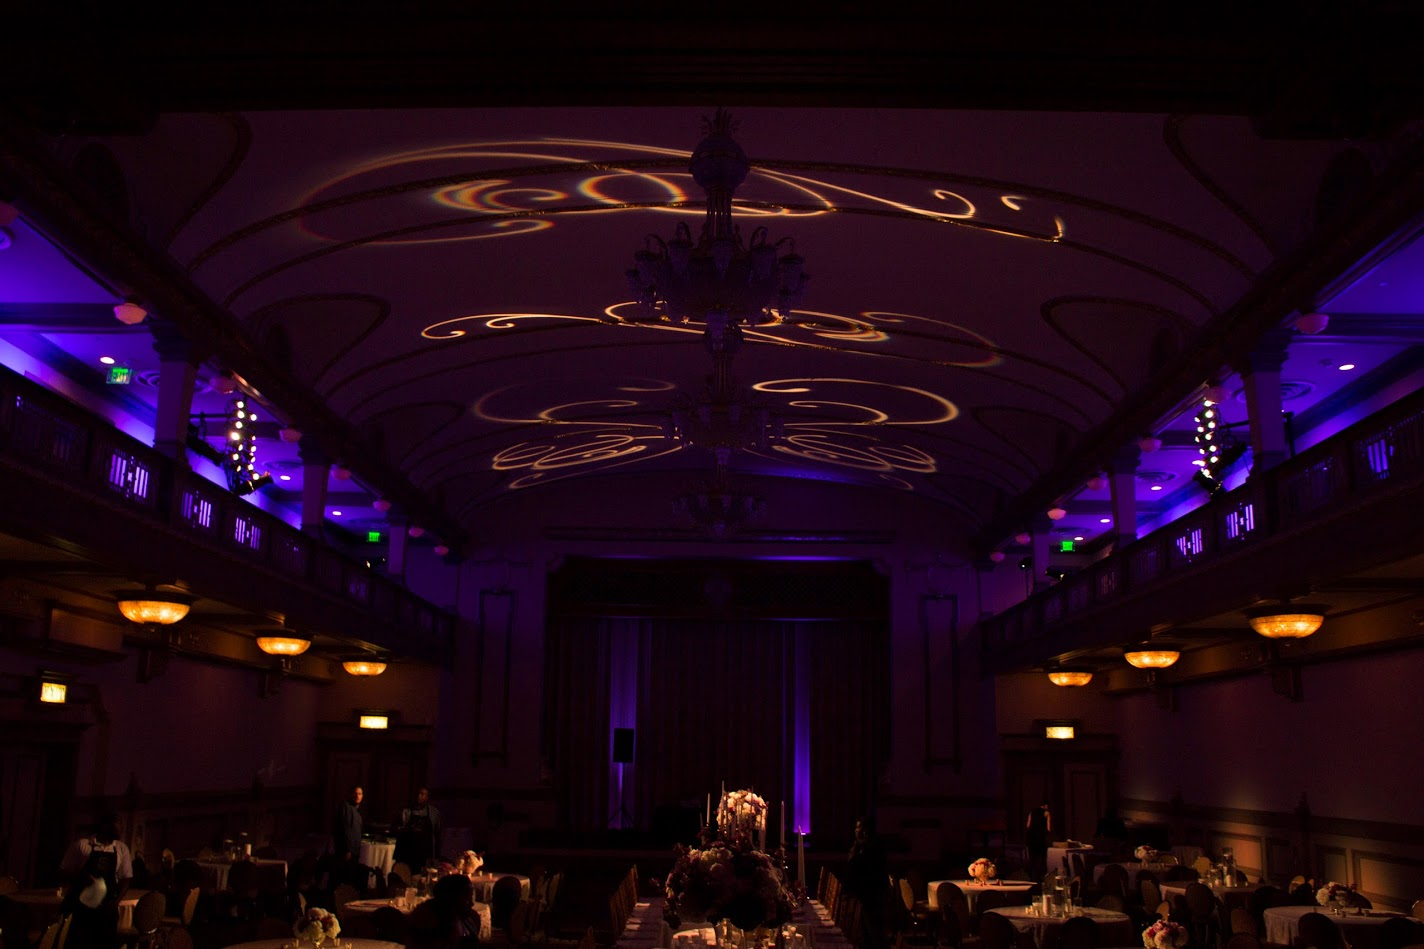 Pattern Gobos projected on the ceiling of a venue